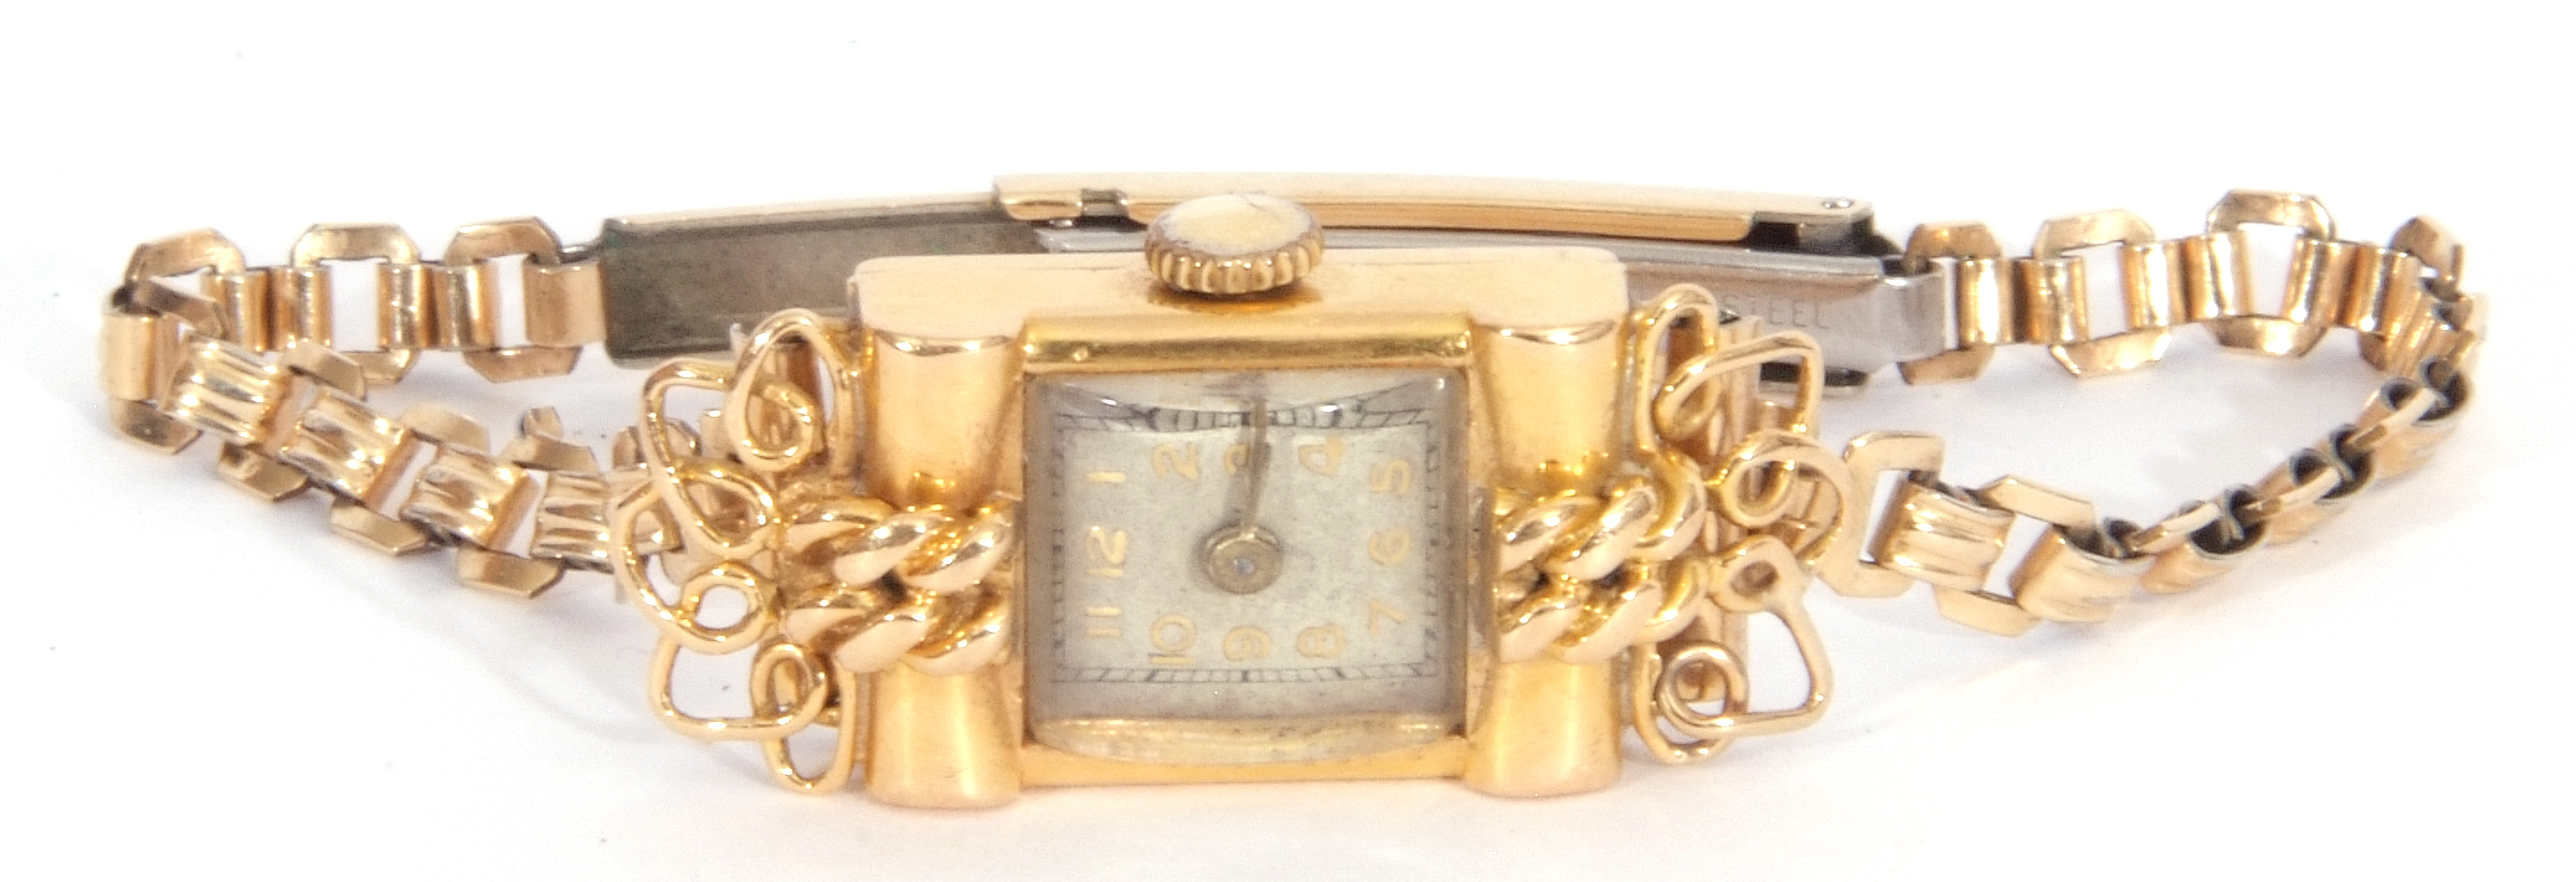 Second quarter of 20th century ladies cased French wristwatch, the rectangular shaped case with un- - Image 5 of 6